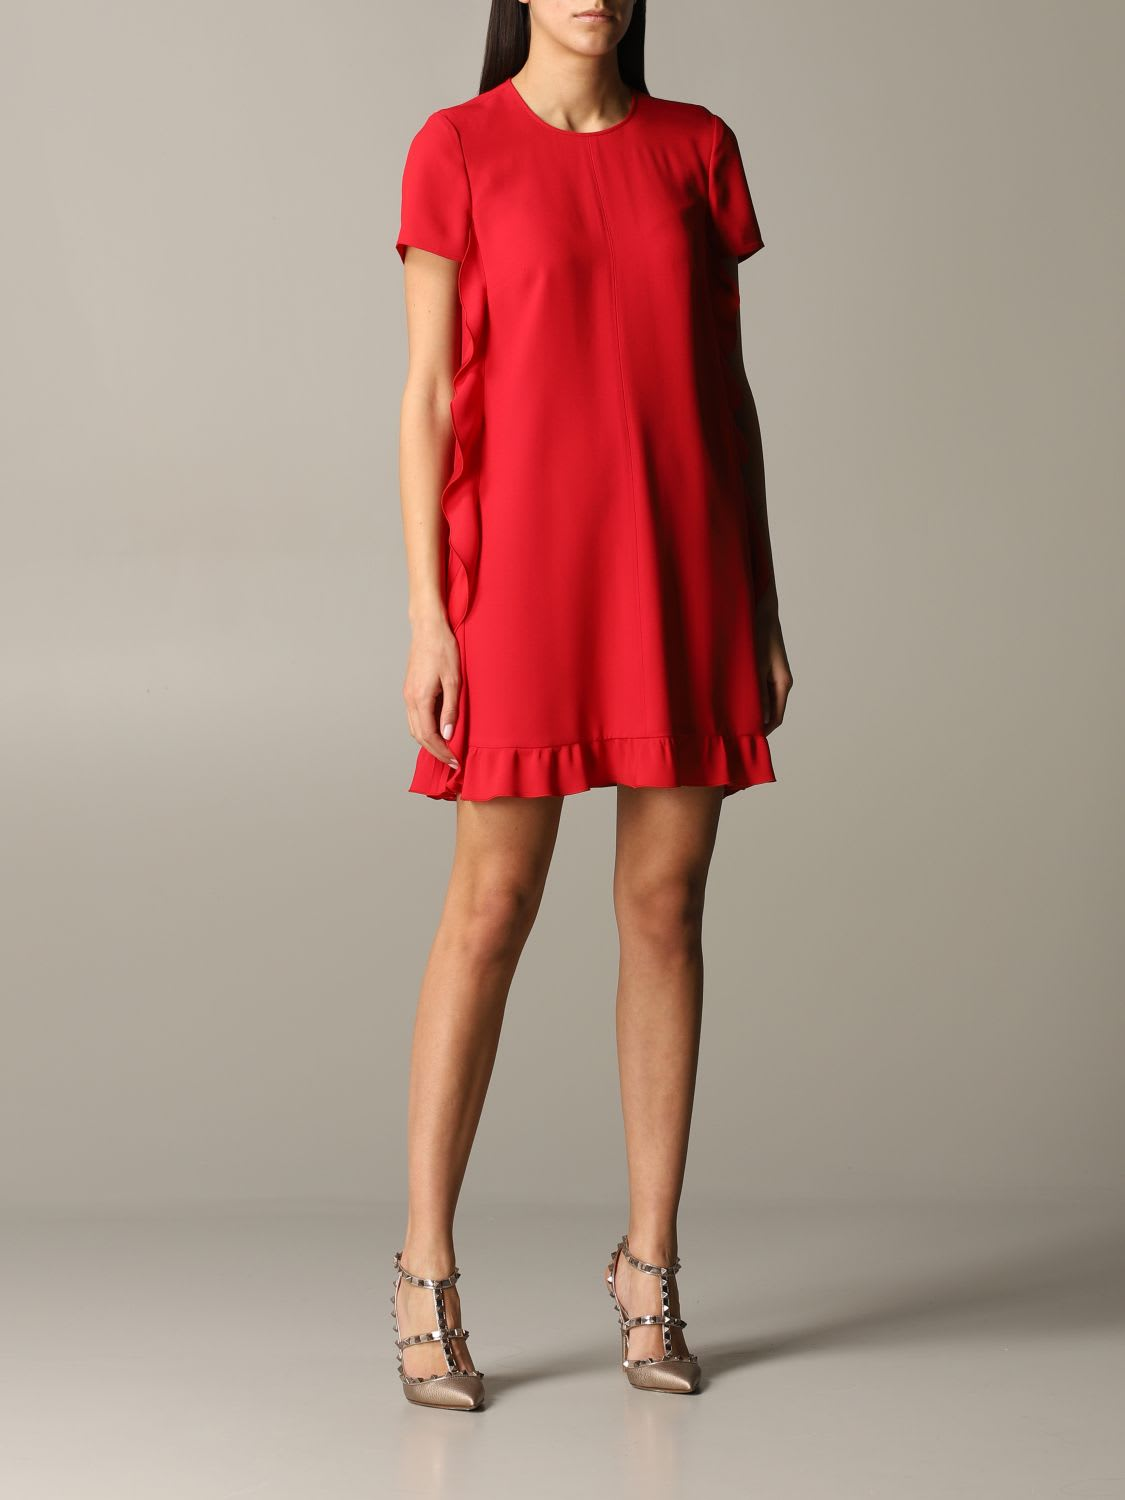 Buy Red Valentino Dress Red Valentino Silk Dress With Ruffles online, shop RED Valentino with free shipping